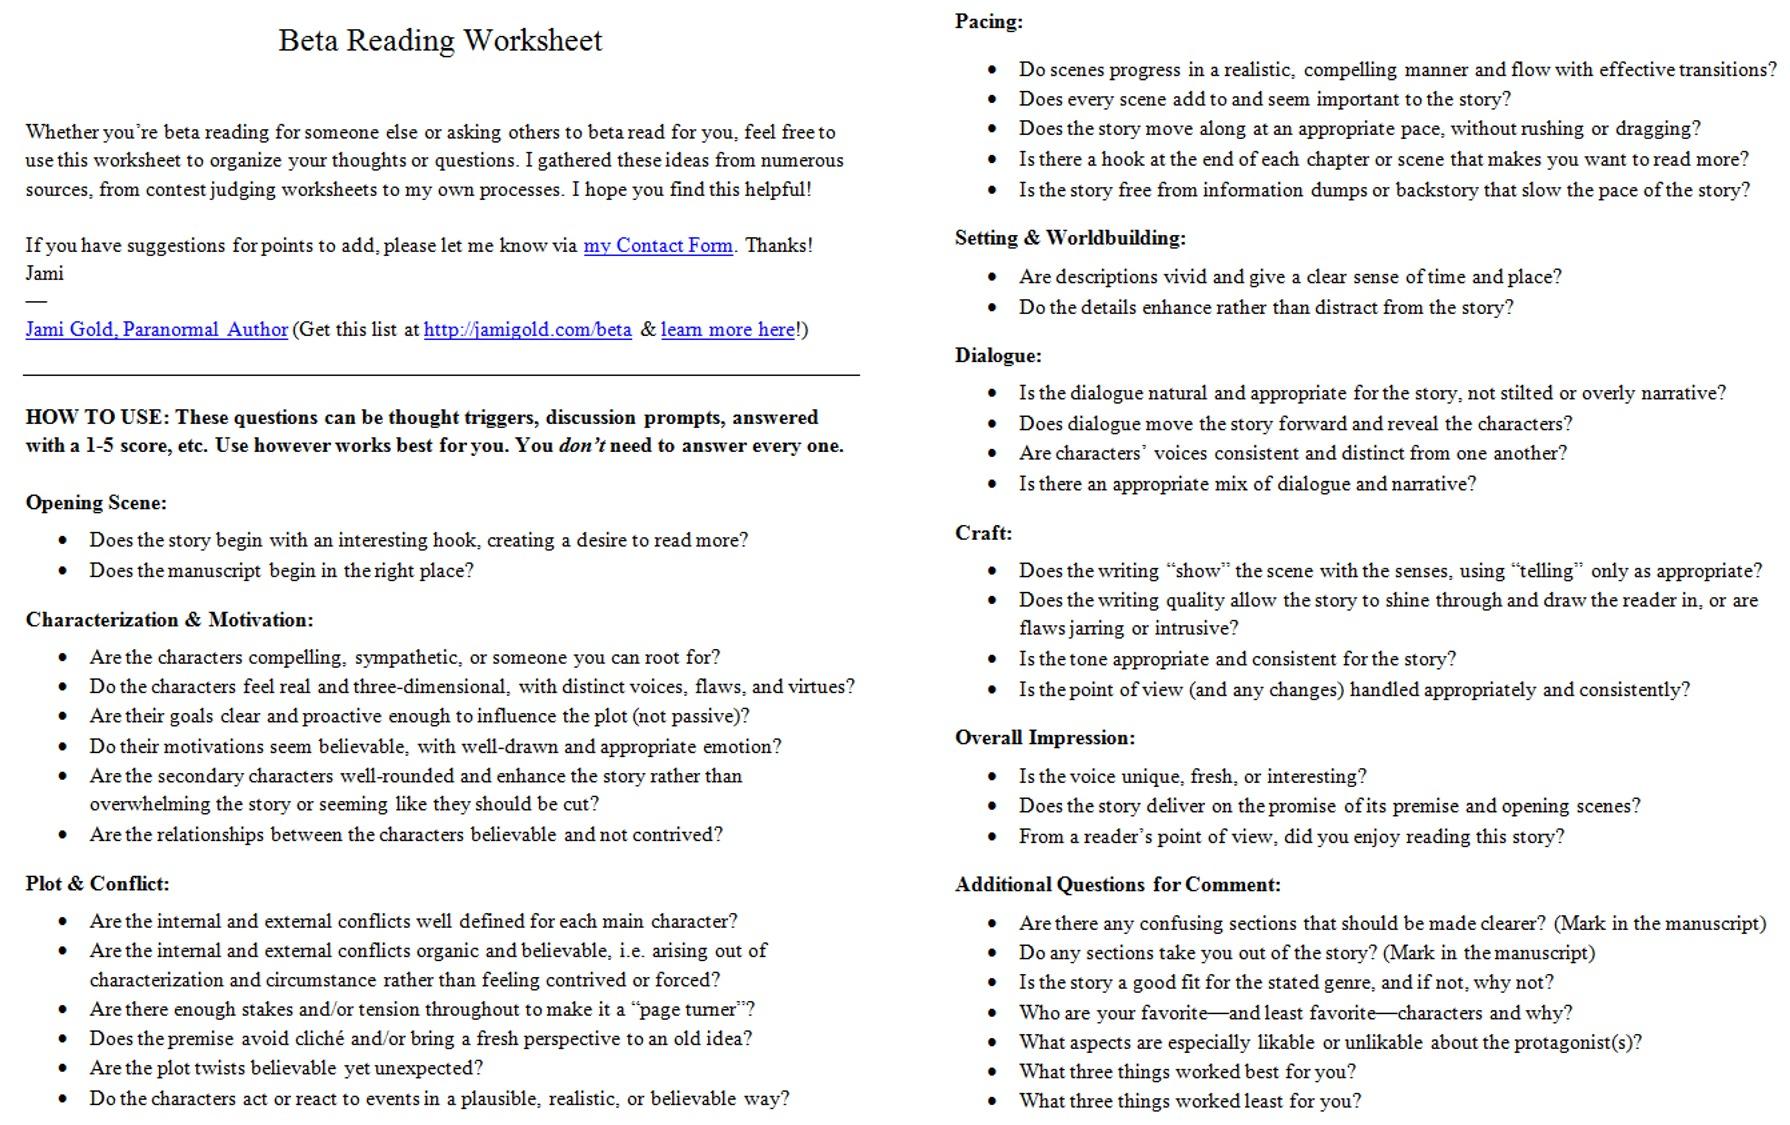 Weirdmailus  Inspiring Worksheets For Writers  Jami Gold Paranormal Author With Licious Screen Shot Of The Twopage Beta Reading Worksheet With Breathtaking Th Grade Punctuation Worksheets Also Reading Skills And Strategies Worksheet In Addition Area Mixed Shapes Worksheet And Mechanical Universe Worksheets As Well As Child Tax Credit Worksheet  Additionally  Tax Computation Worksheet From Jamigoldcom With Weirdmailus  Licious Worksheets For Writers  Jami Gold Paranormal Author With Breathtaking Screen Shot Of The Twopage Beta Reading Worksheet And Inspiring Th Grade Punctuation Worksheets Also Reading Skills And Strategies Worksheet In Addition Area Mixed Shapes Worksheet From Jamigoldcom